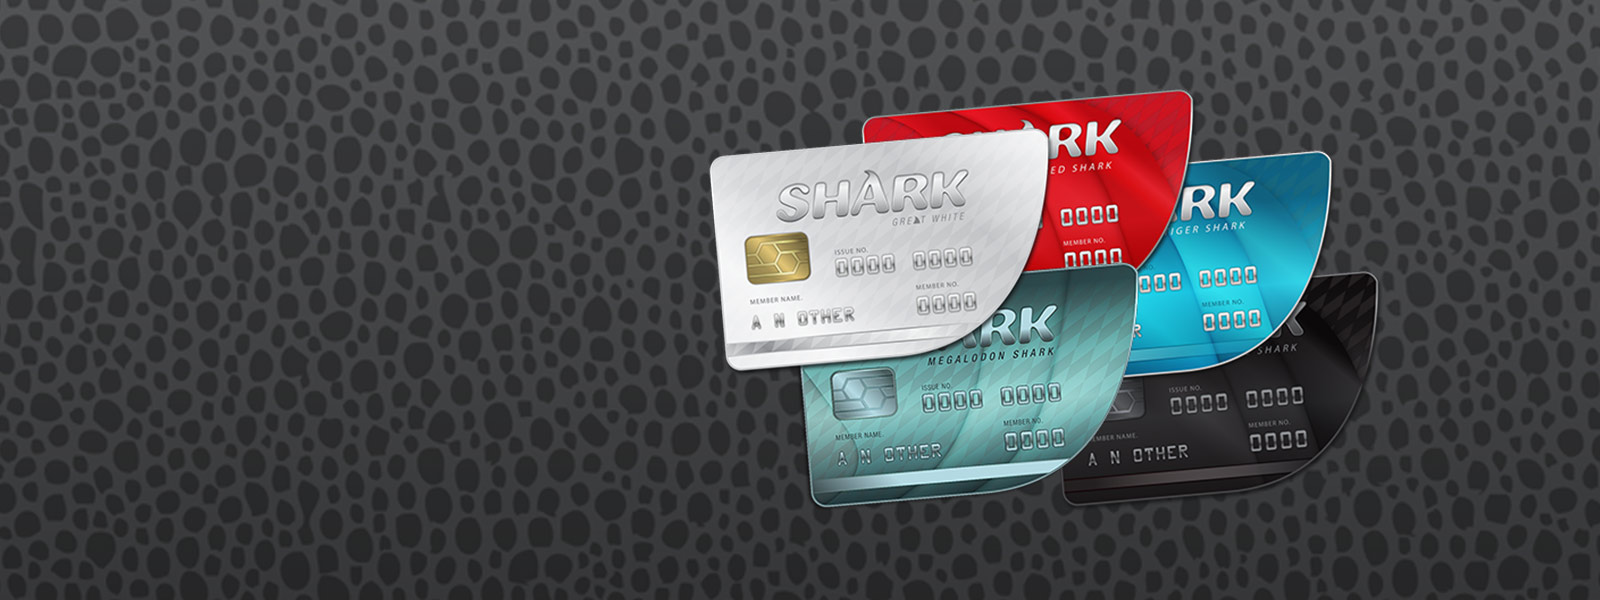 View of multiple shark credit cards